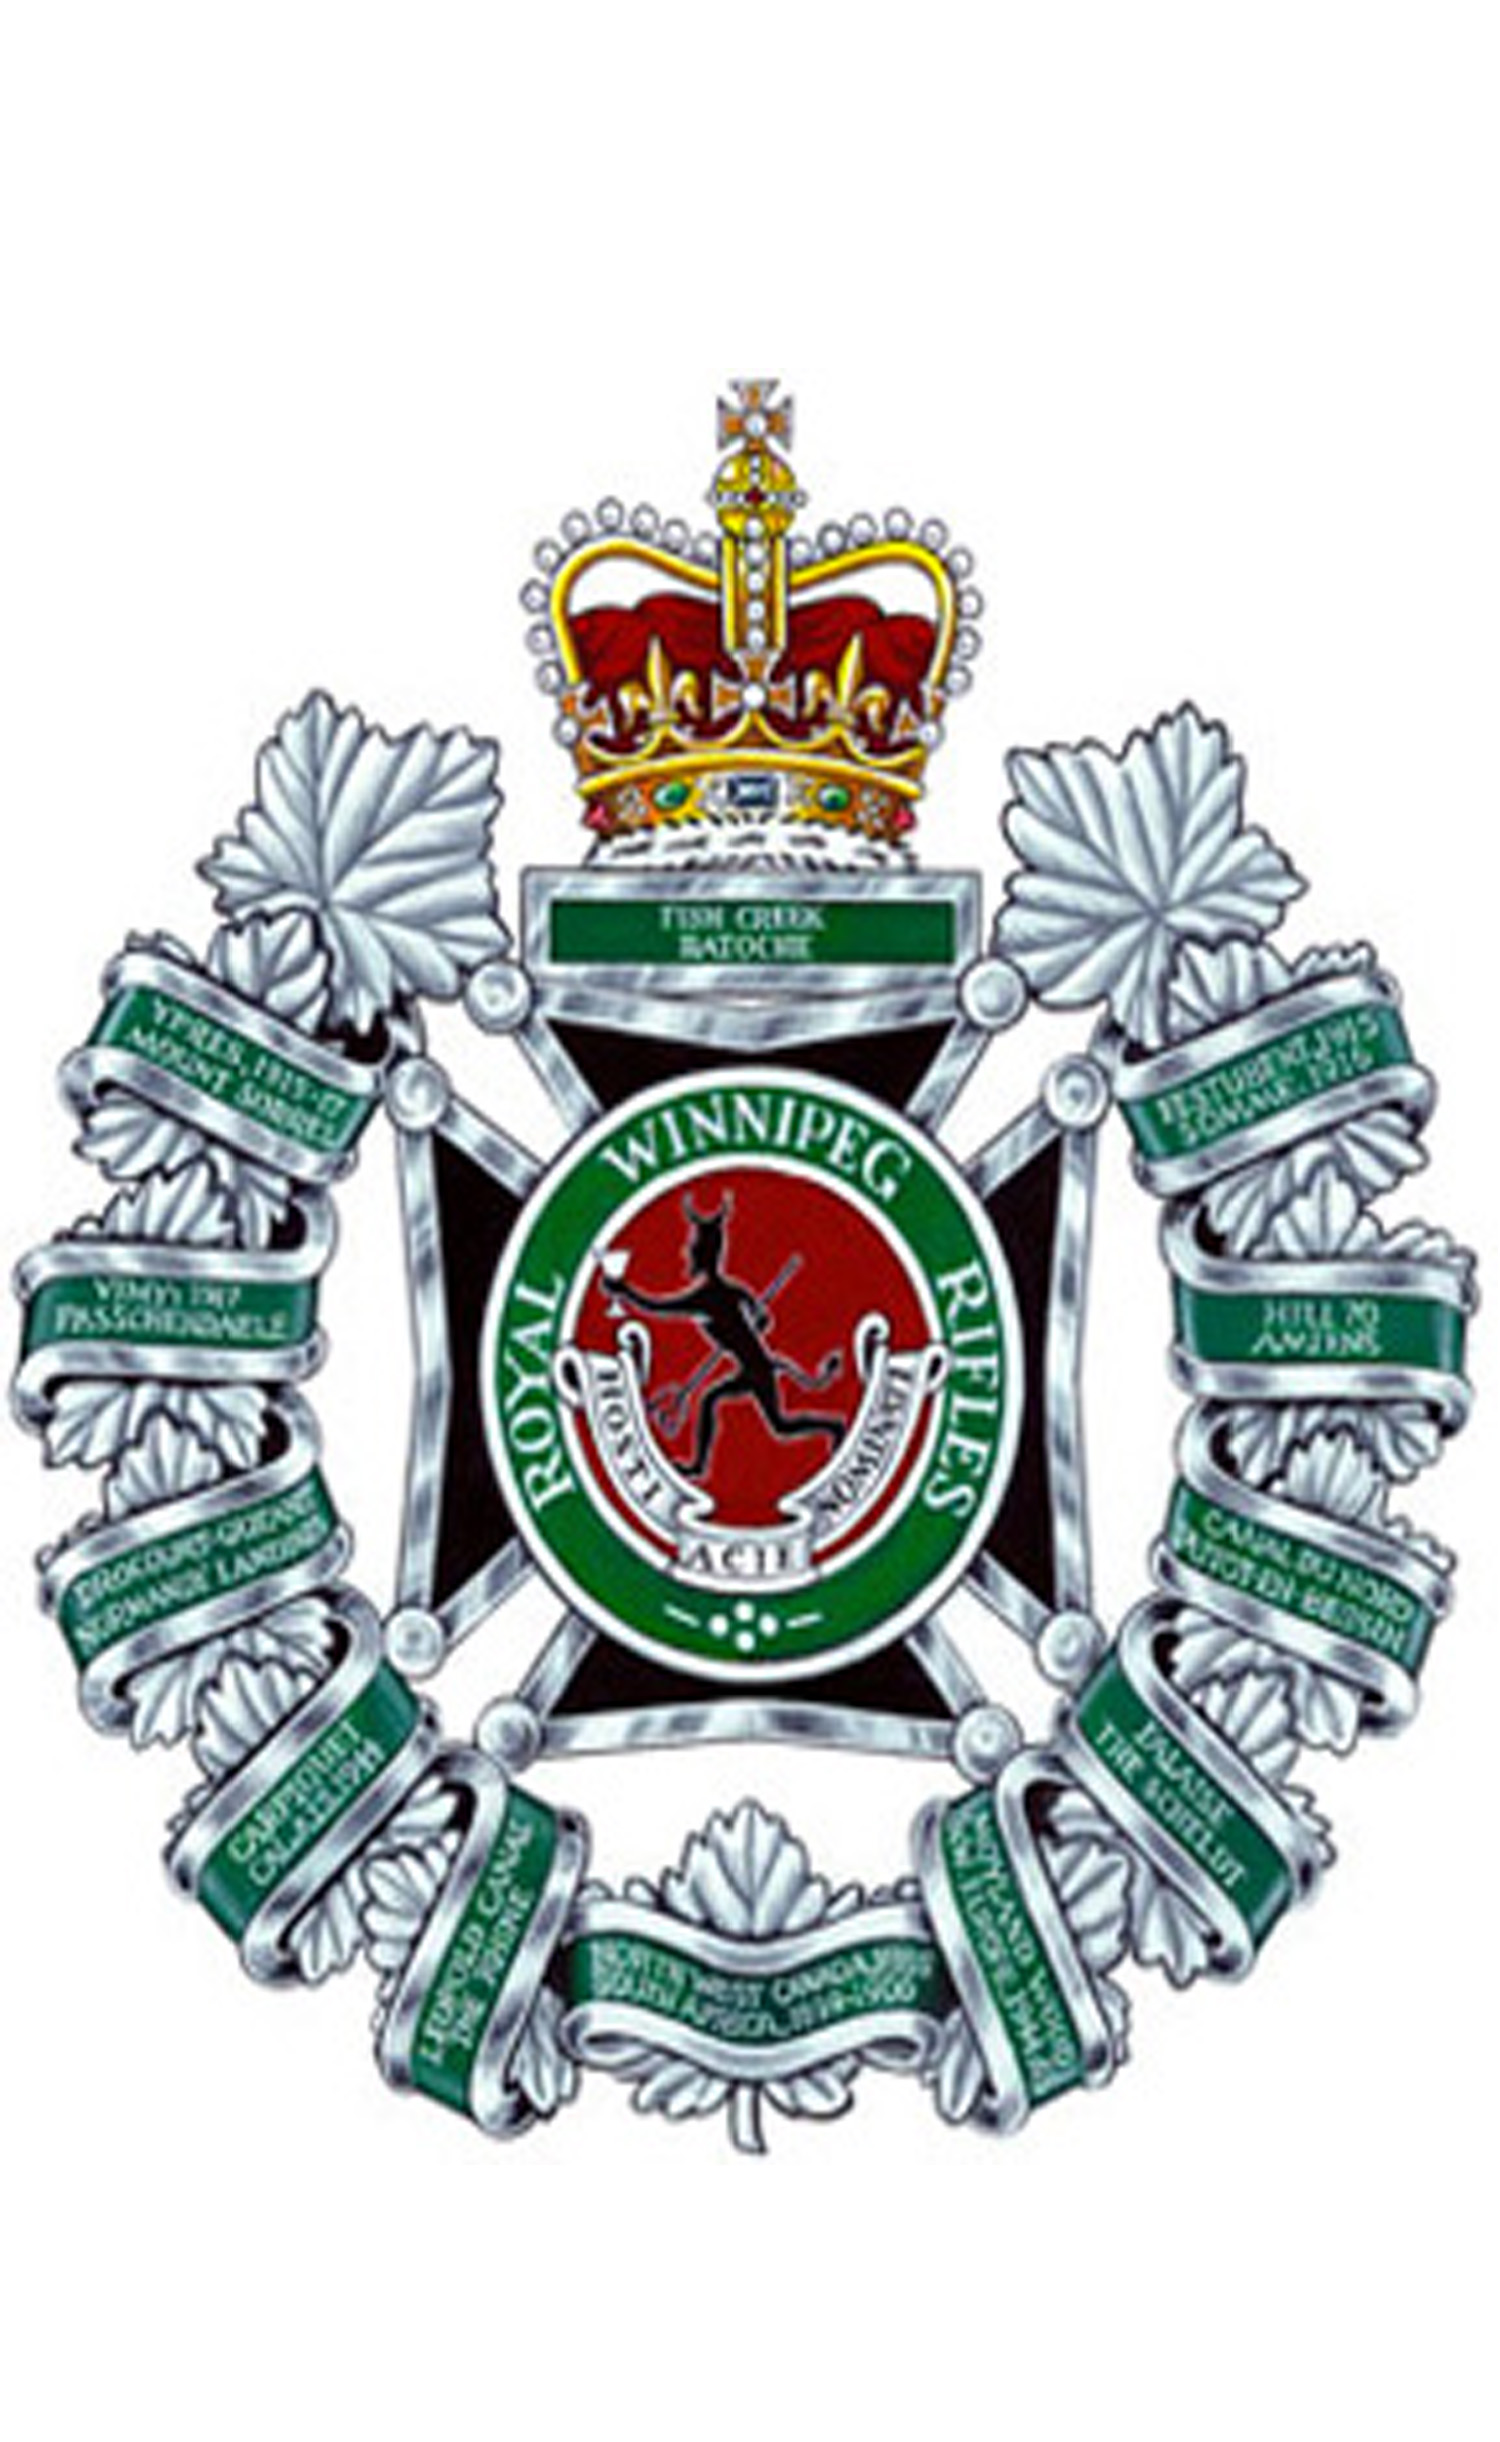 The Royal Winnipeg Rifles